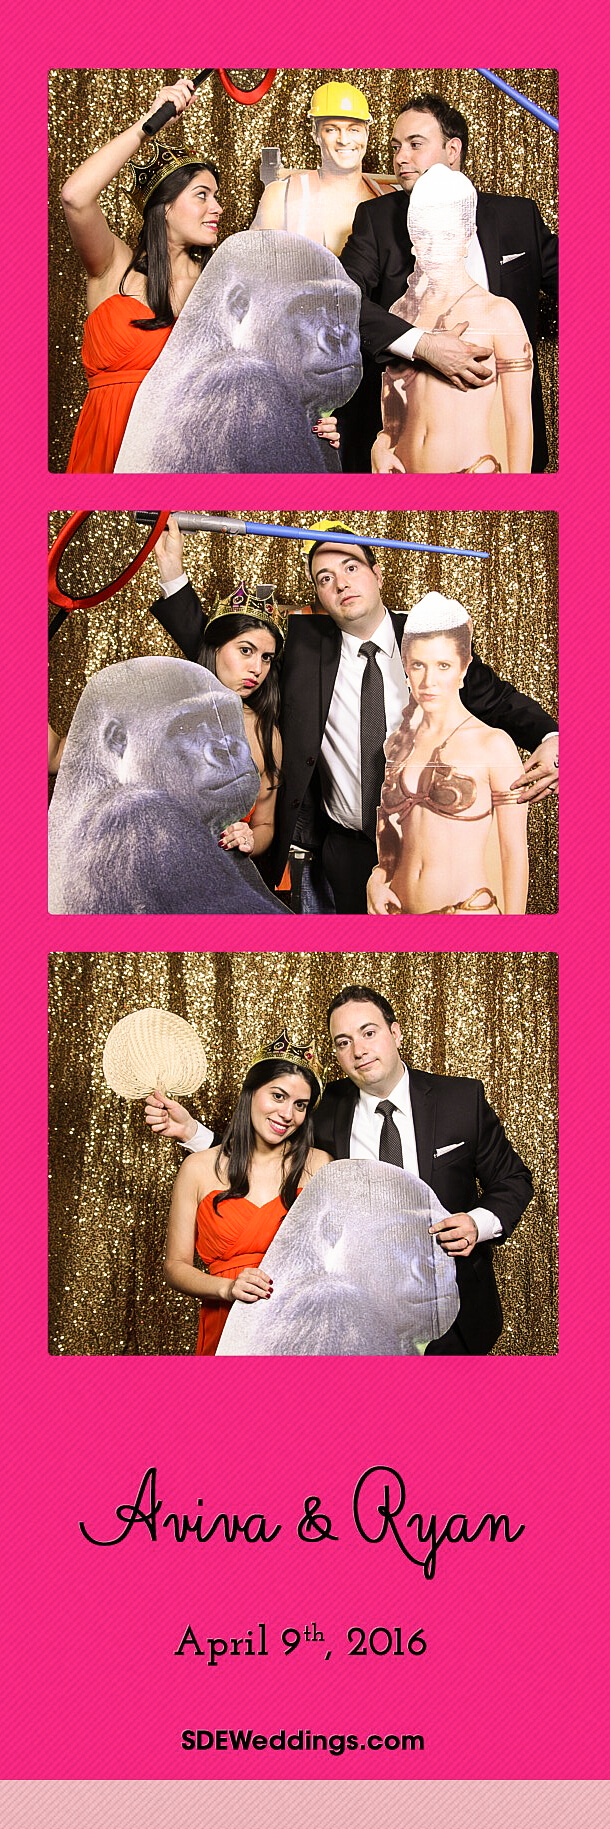 Art Gallery of Ontario AGO Wedding Photo Booth Rental 11